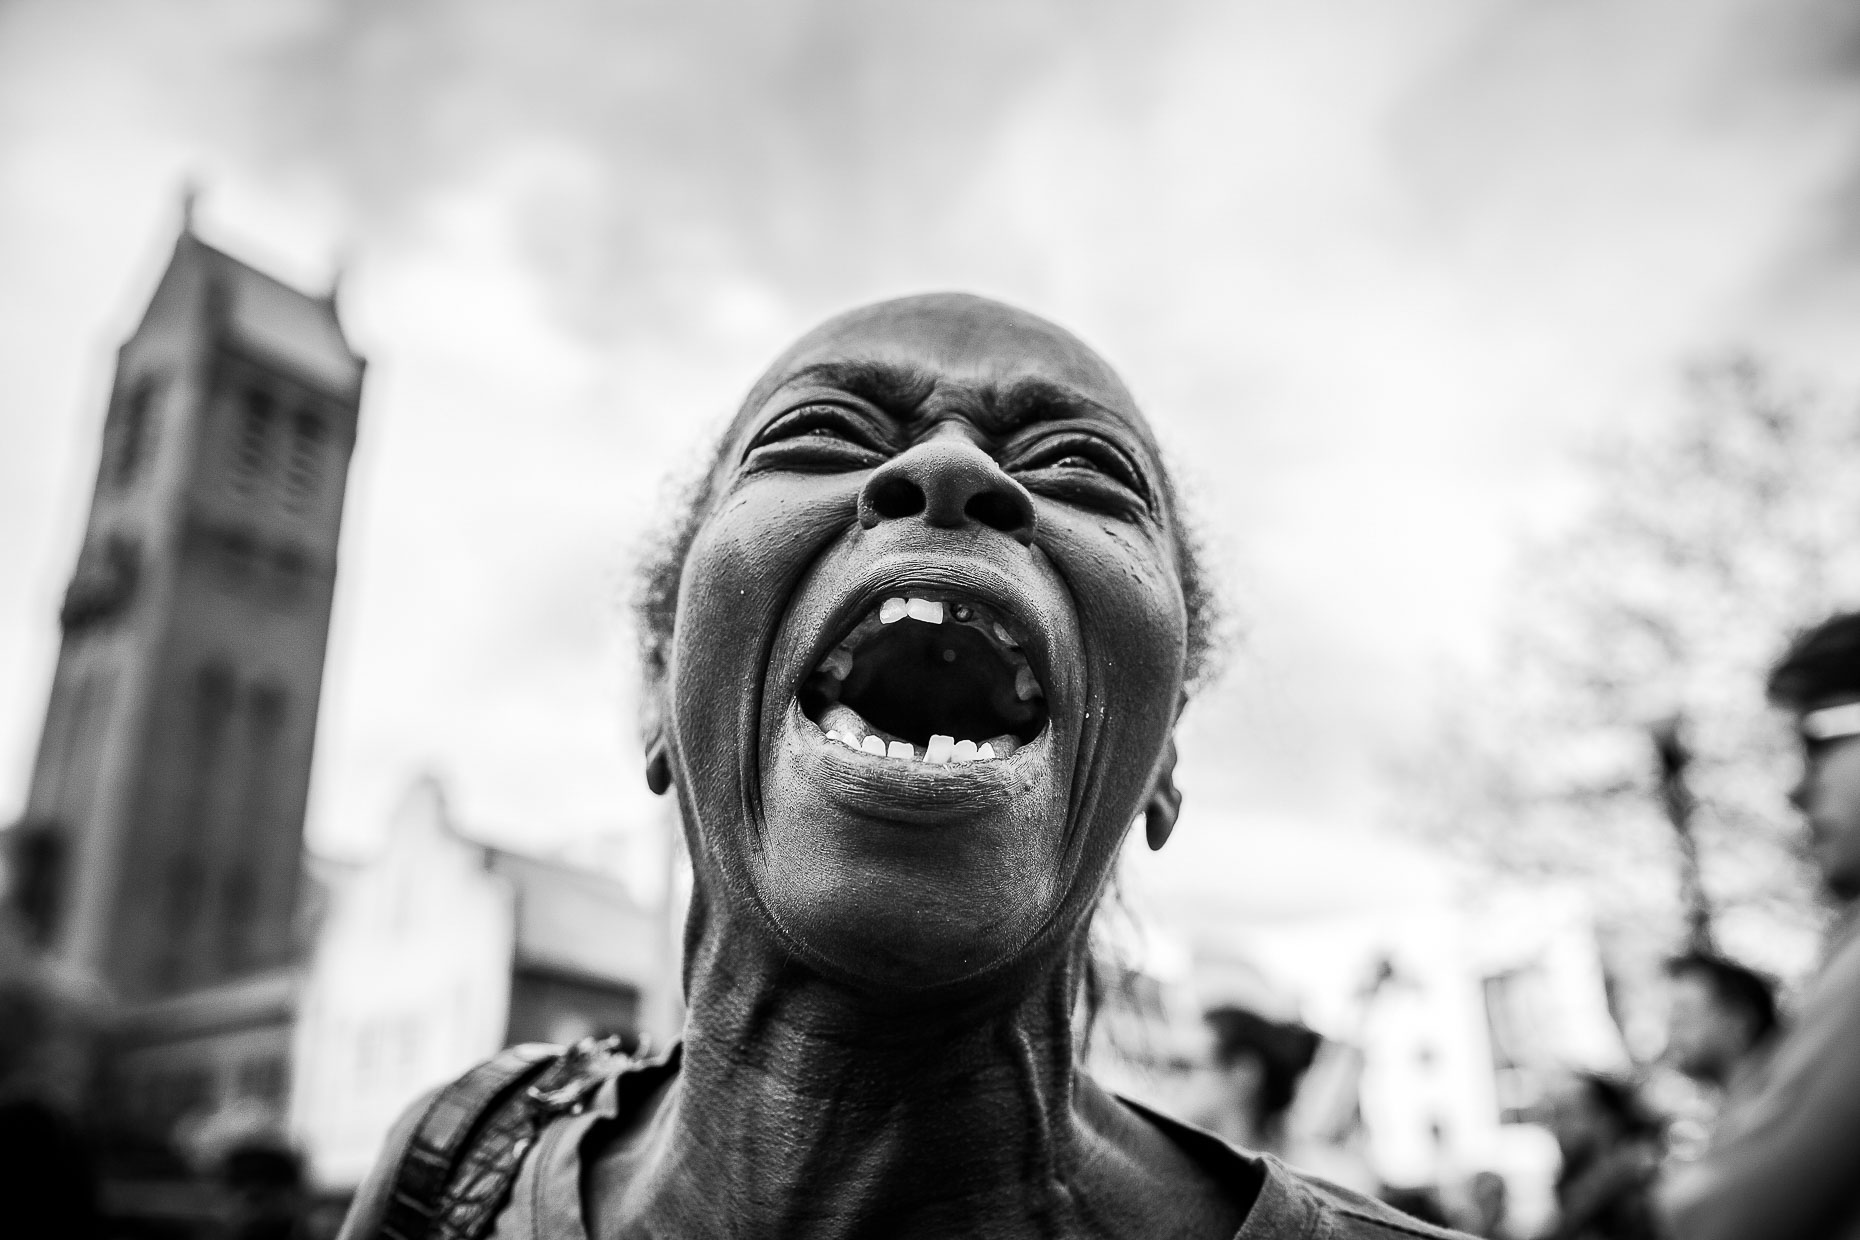 Baltimore Responds - The Baltimore Uprising - Photojournalism 35